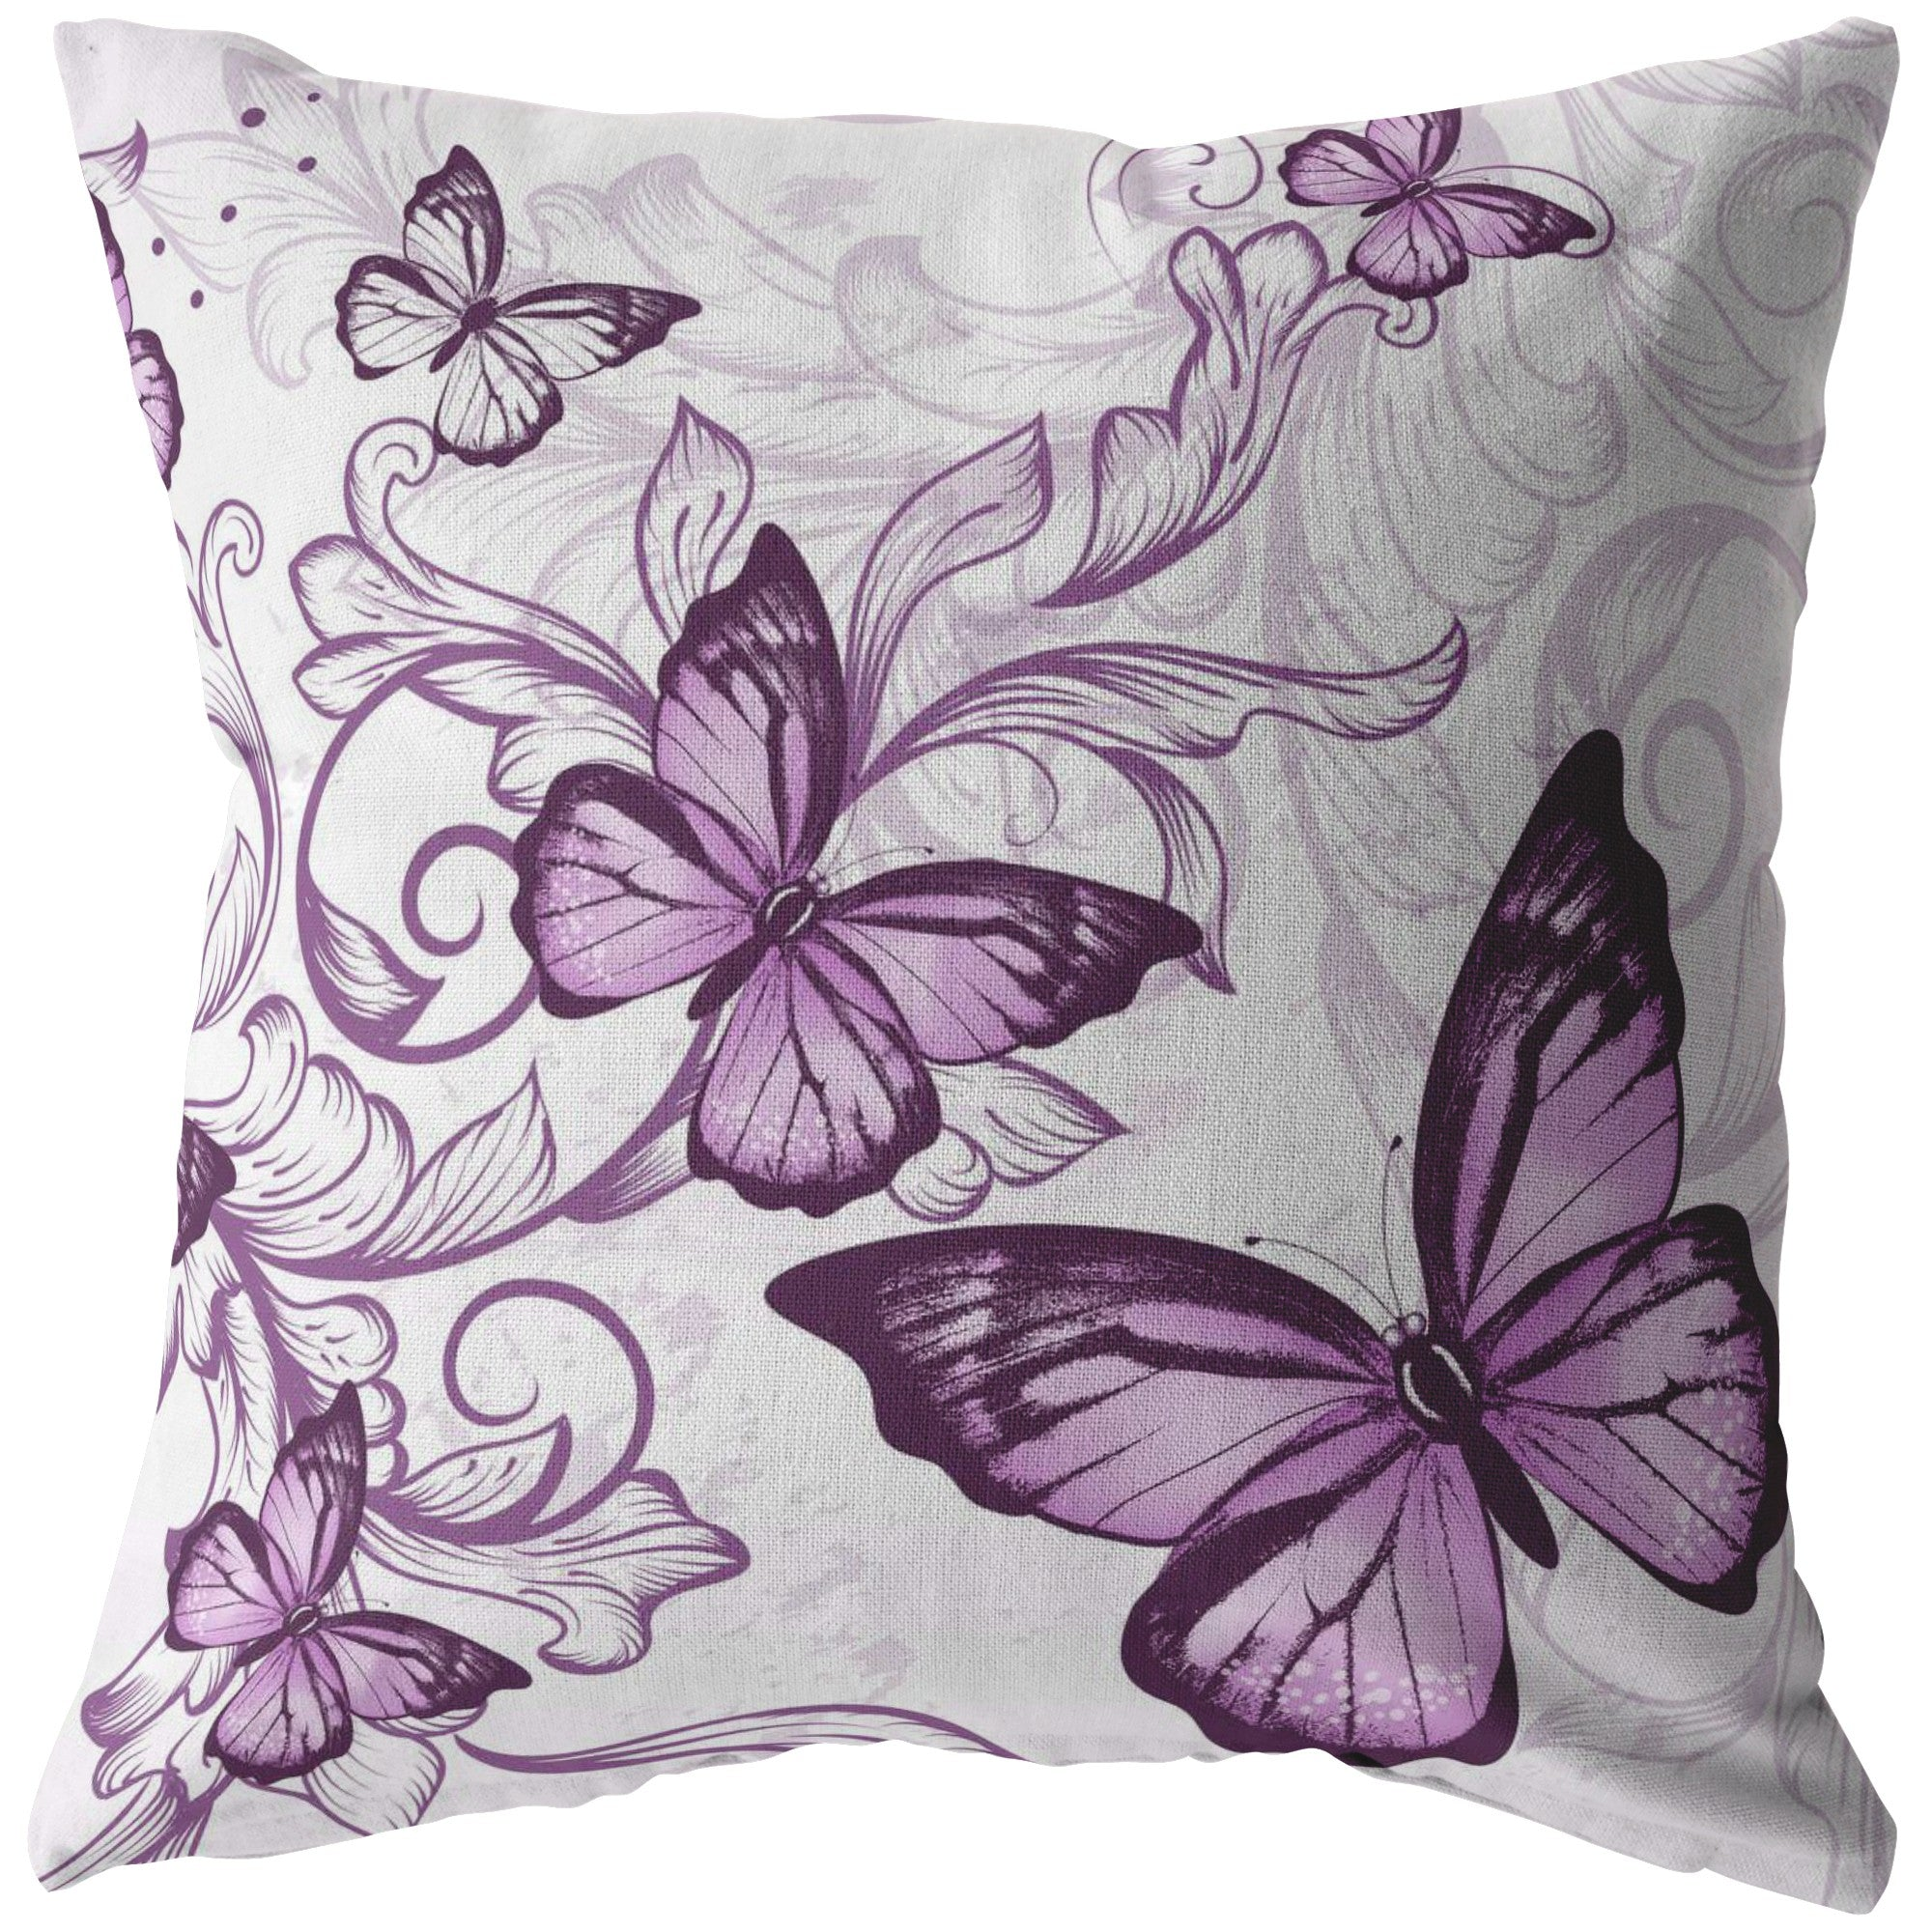 Purple Butterfly Pillow in White - The Unchargeables